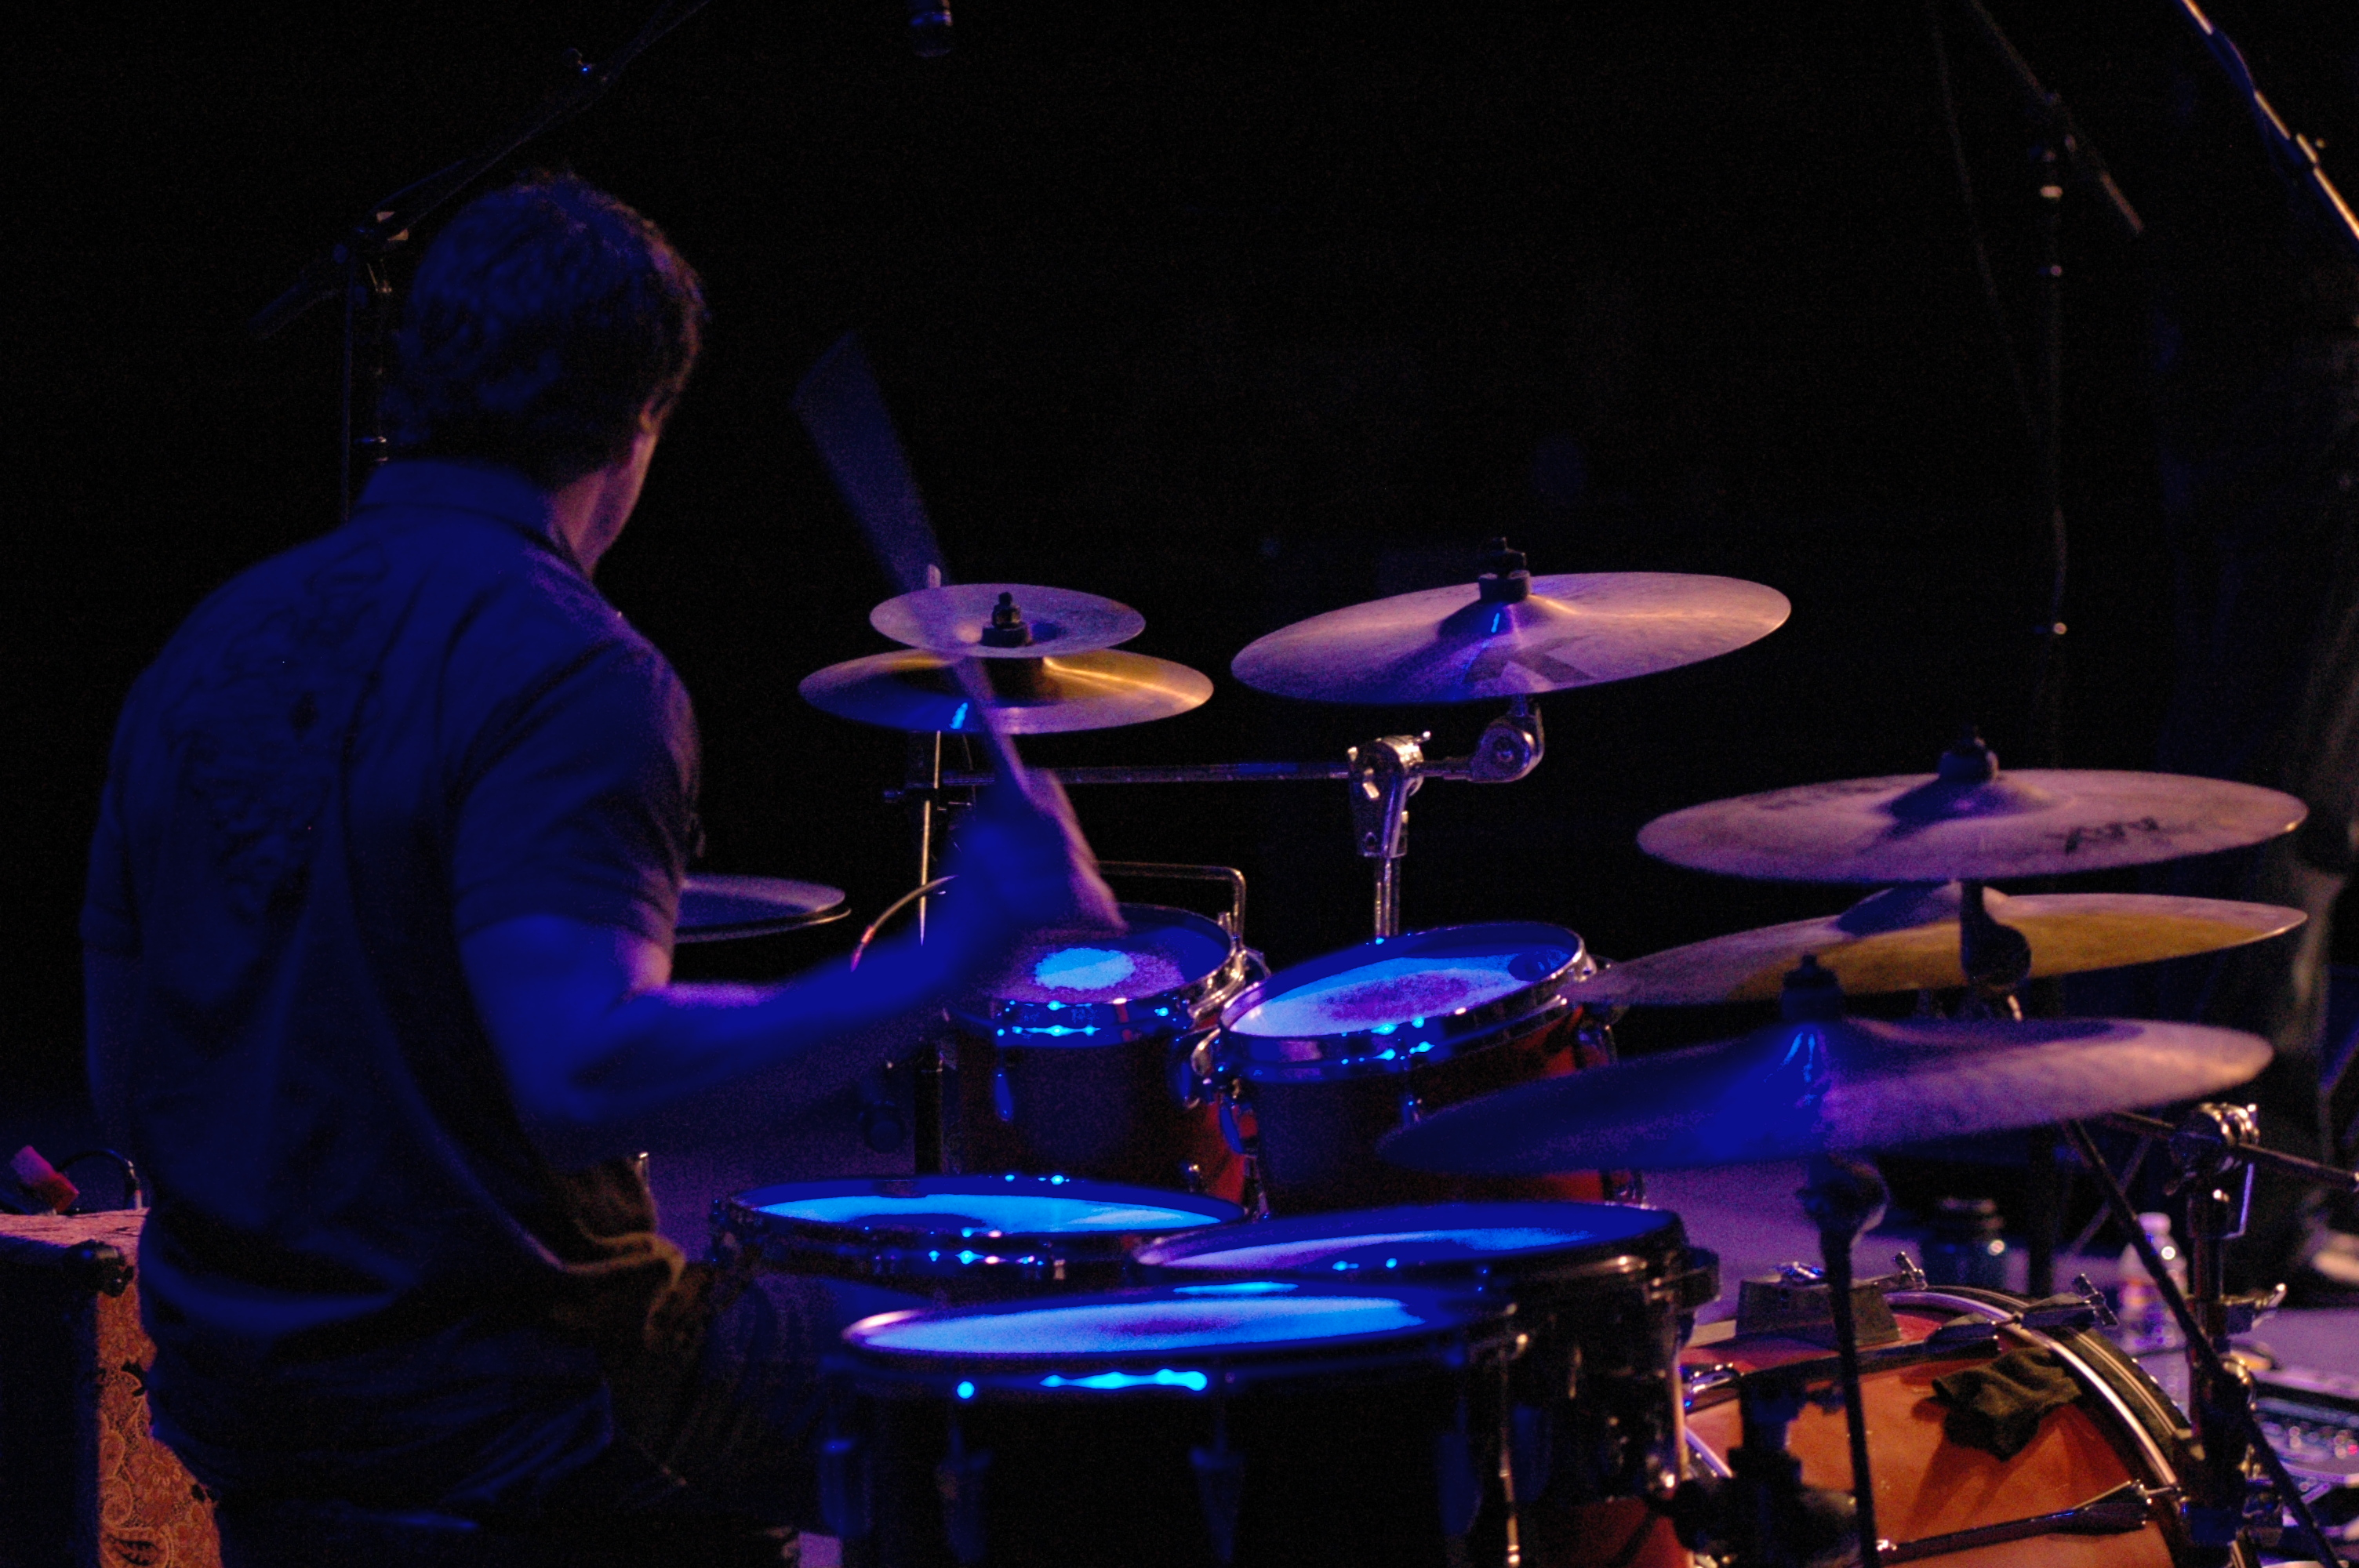 Greg Beck Drum Solo